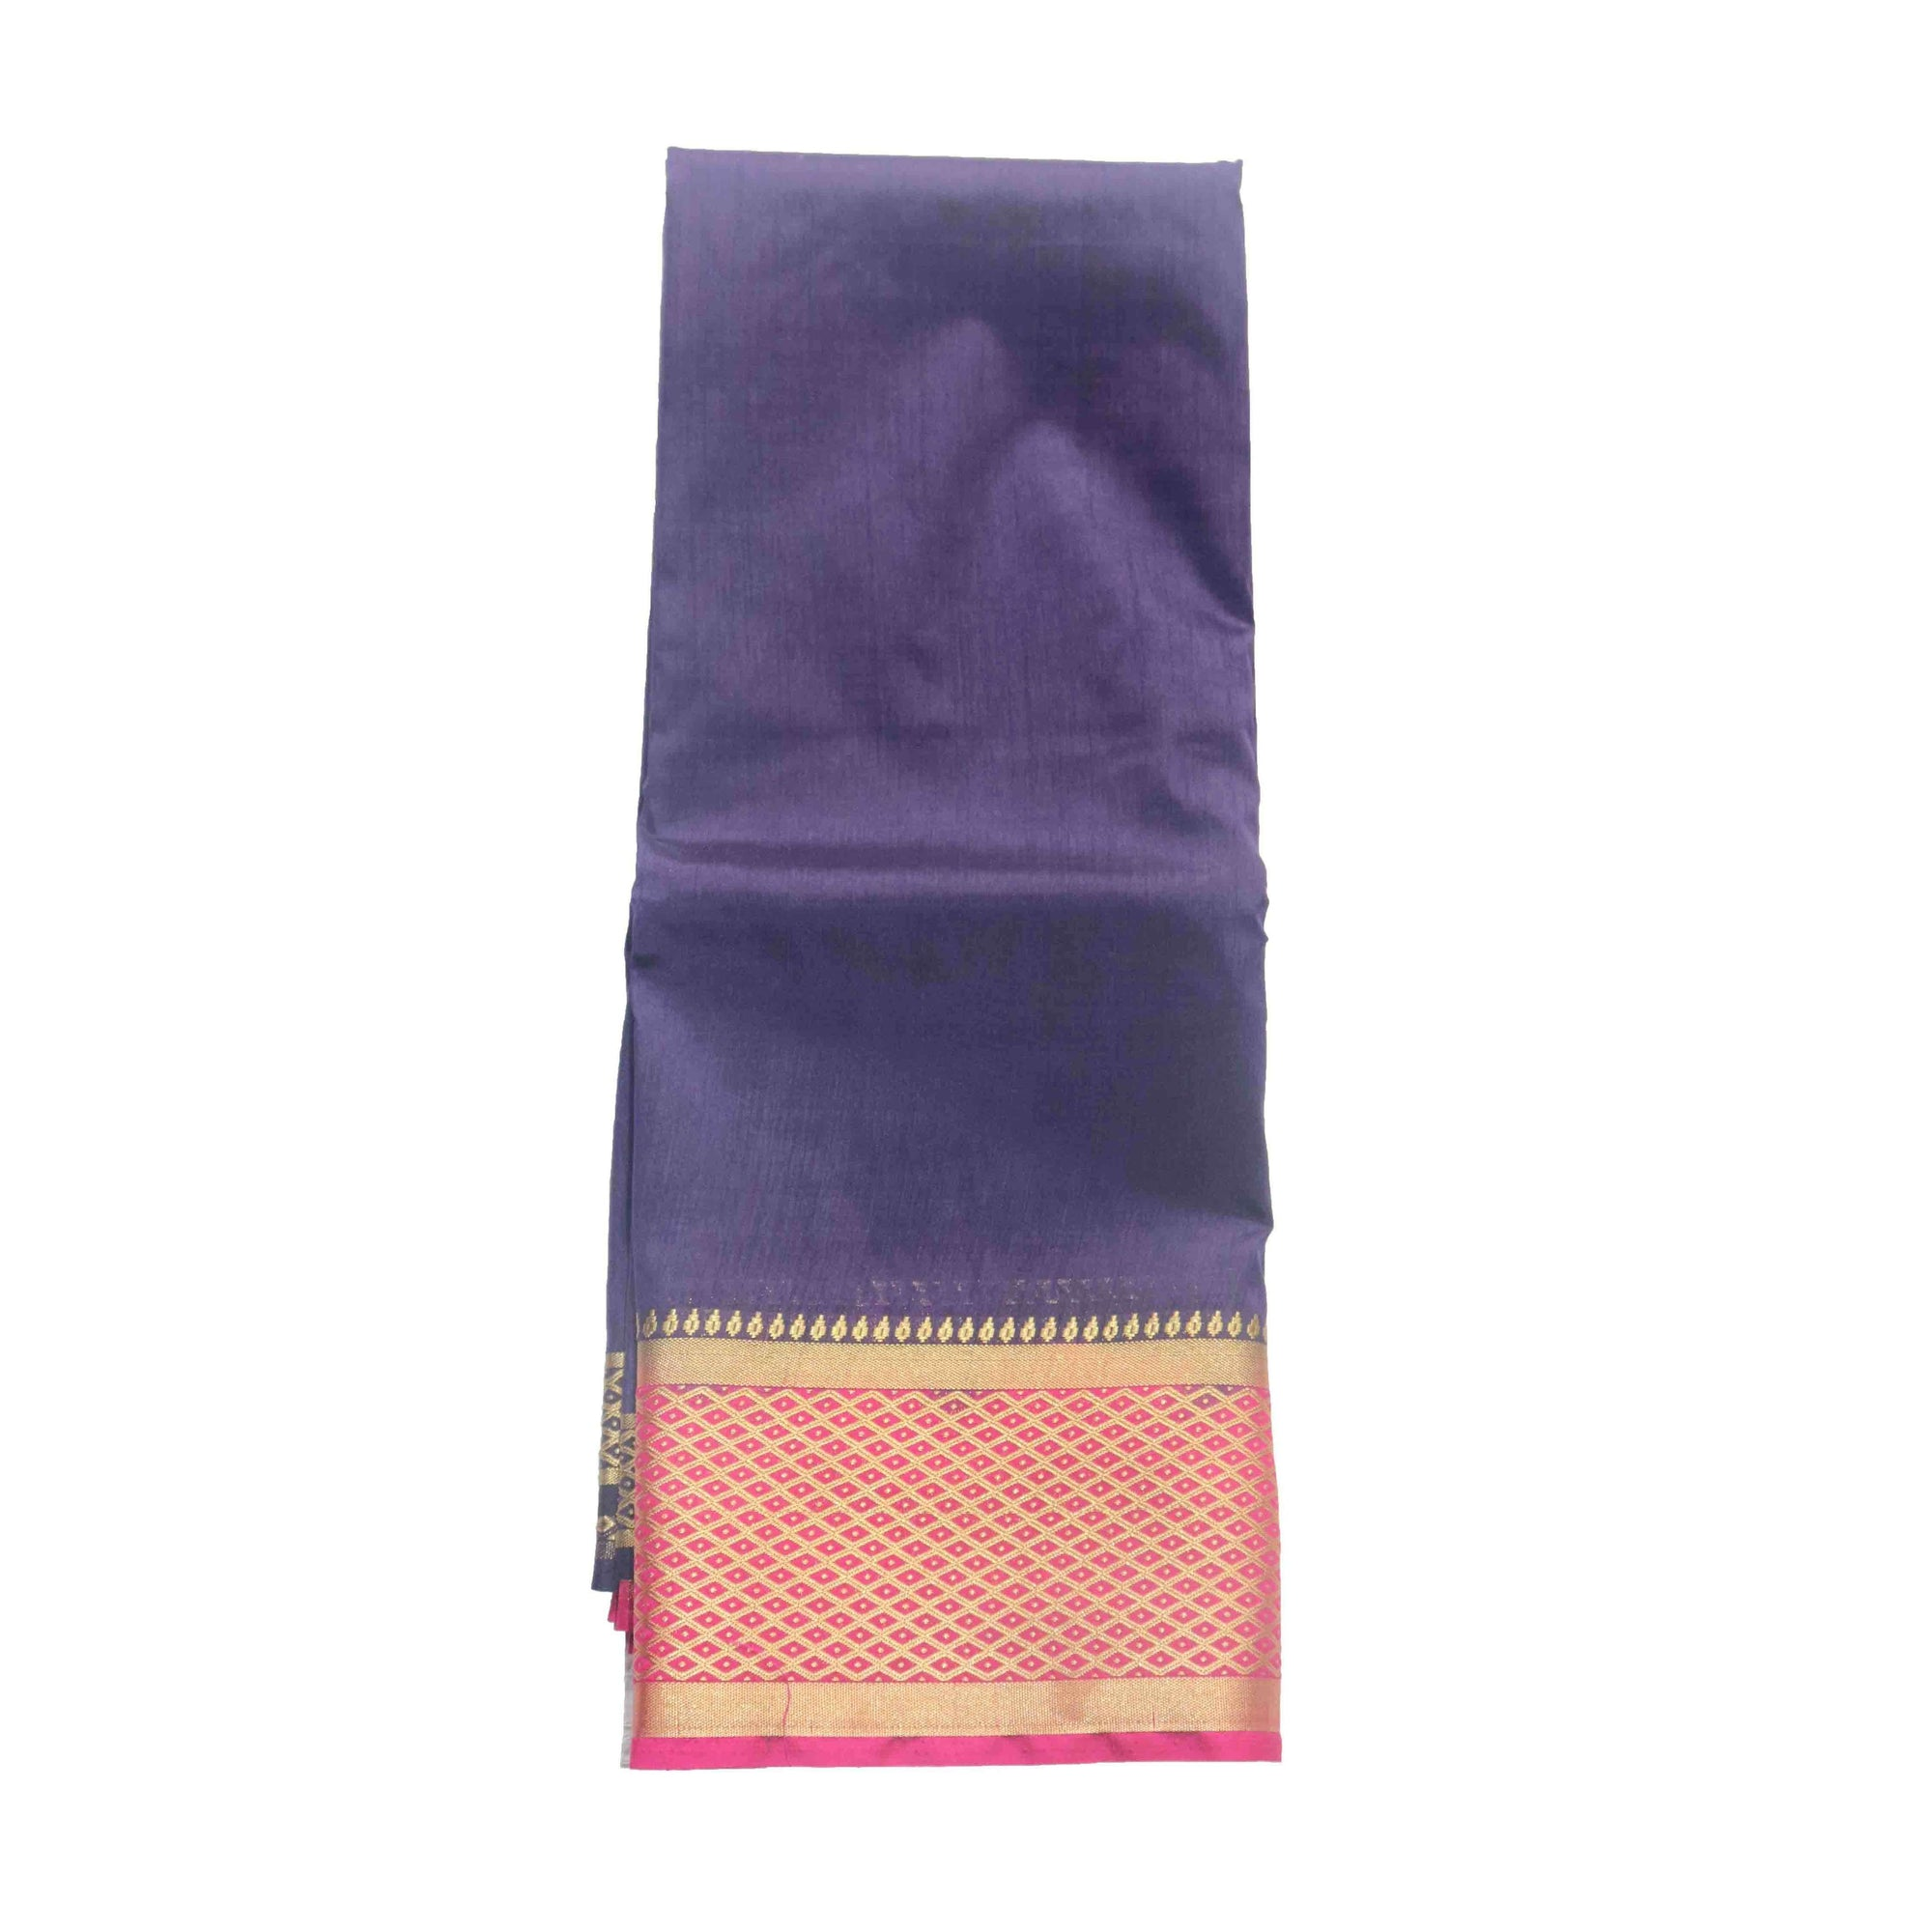 Arars Women's Kanchipuram Kanjivaram Pattu Style Raw Plain Silk Saree With Blouse (463 NAVY RANI )